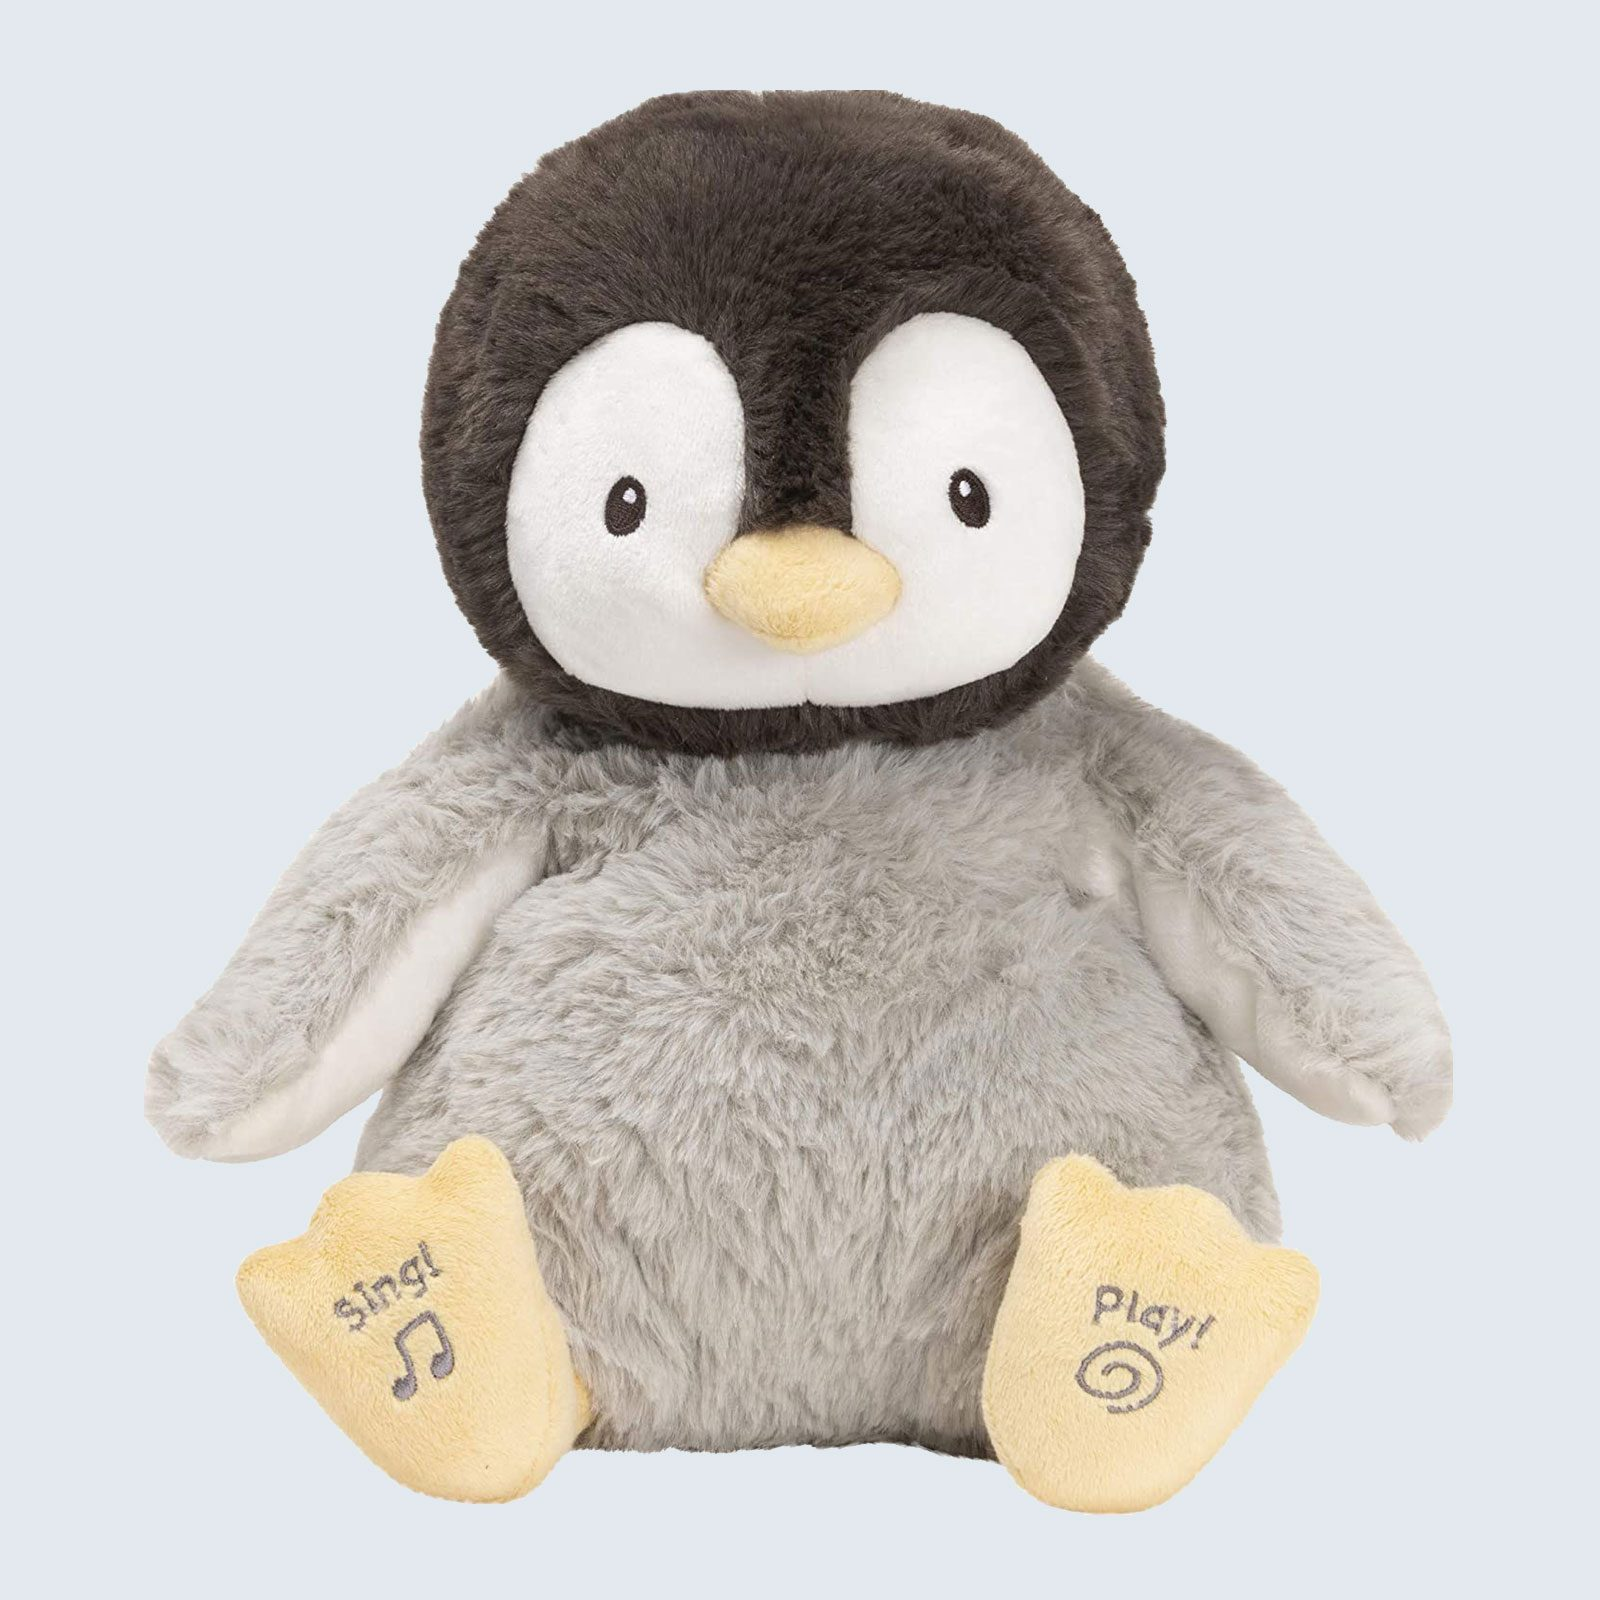 For the cutest little kissy face: GUND Animated Kissy The Penguin Stuffed Animal Plush